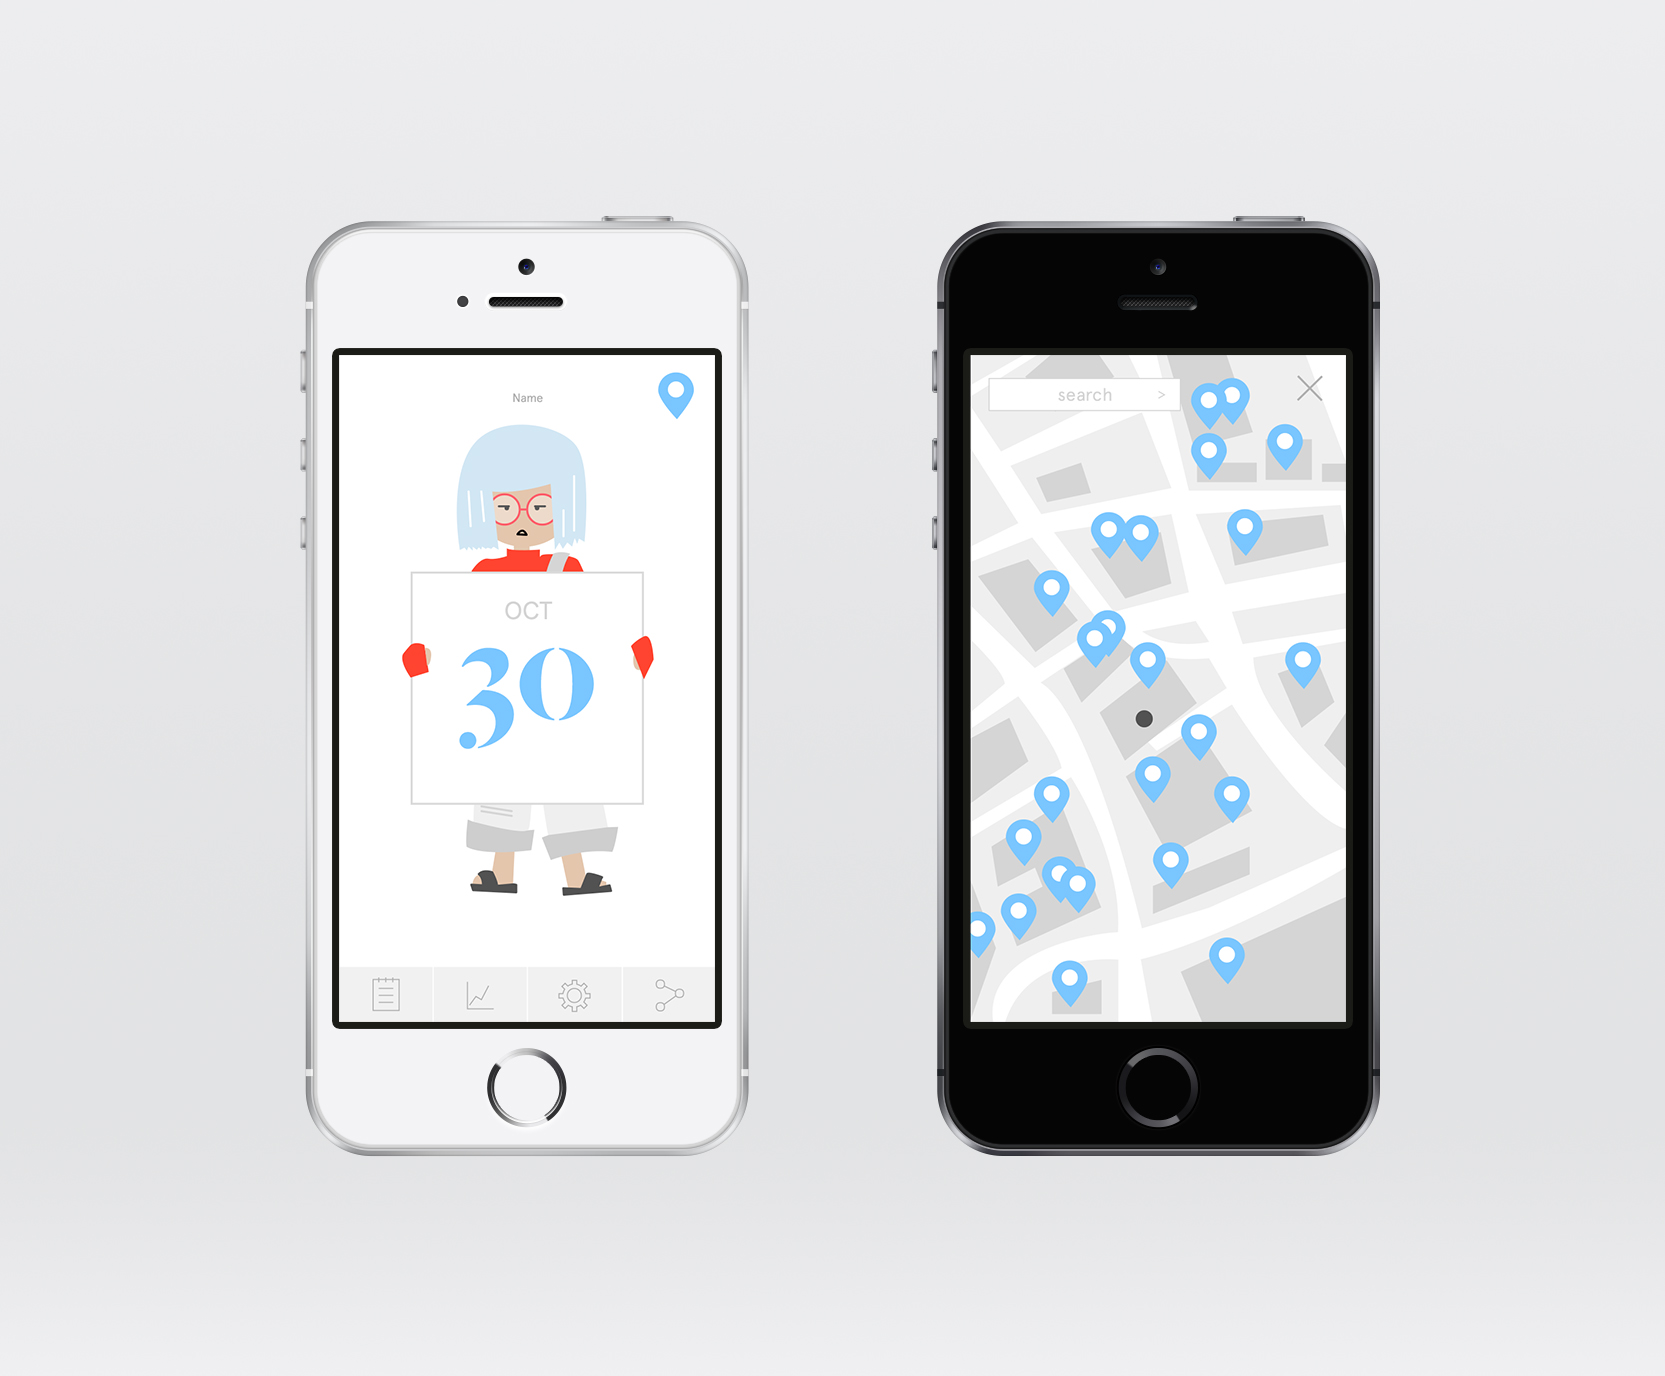 Left: Home screen; Right: In-App map showing the nearby locations of public water fountains or other drinking water sources